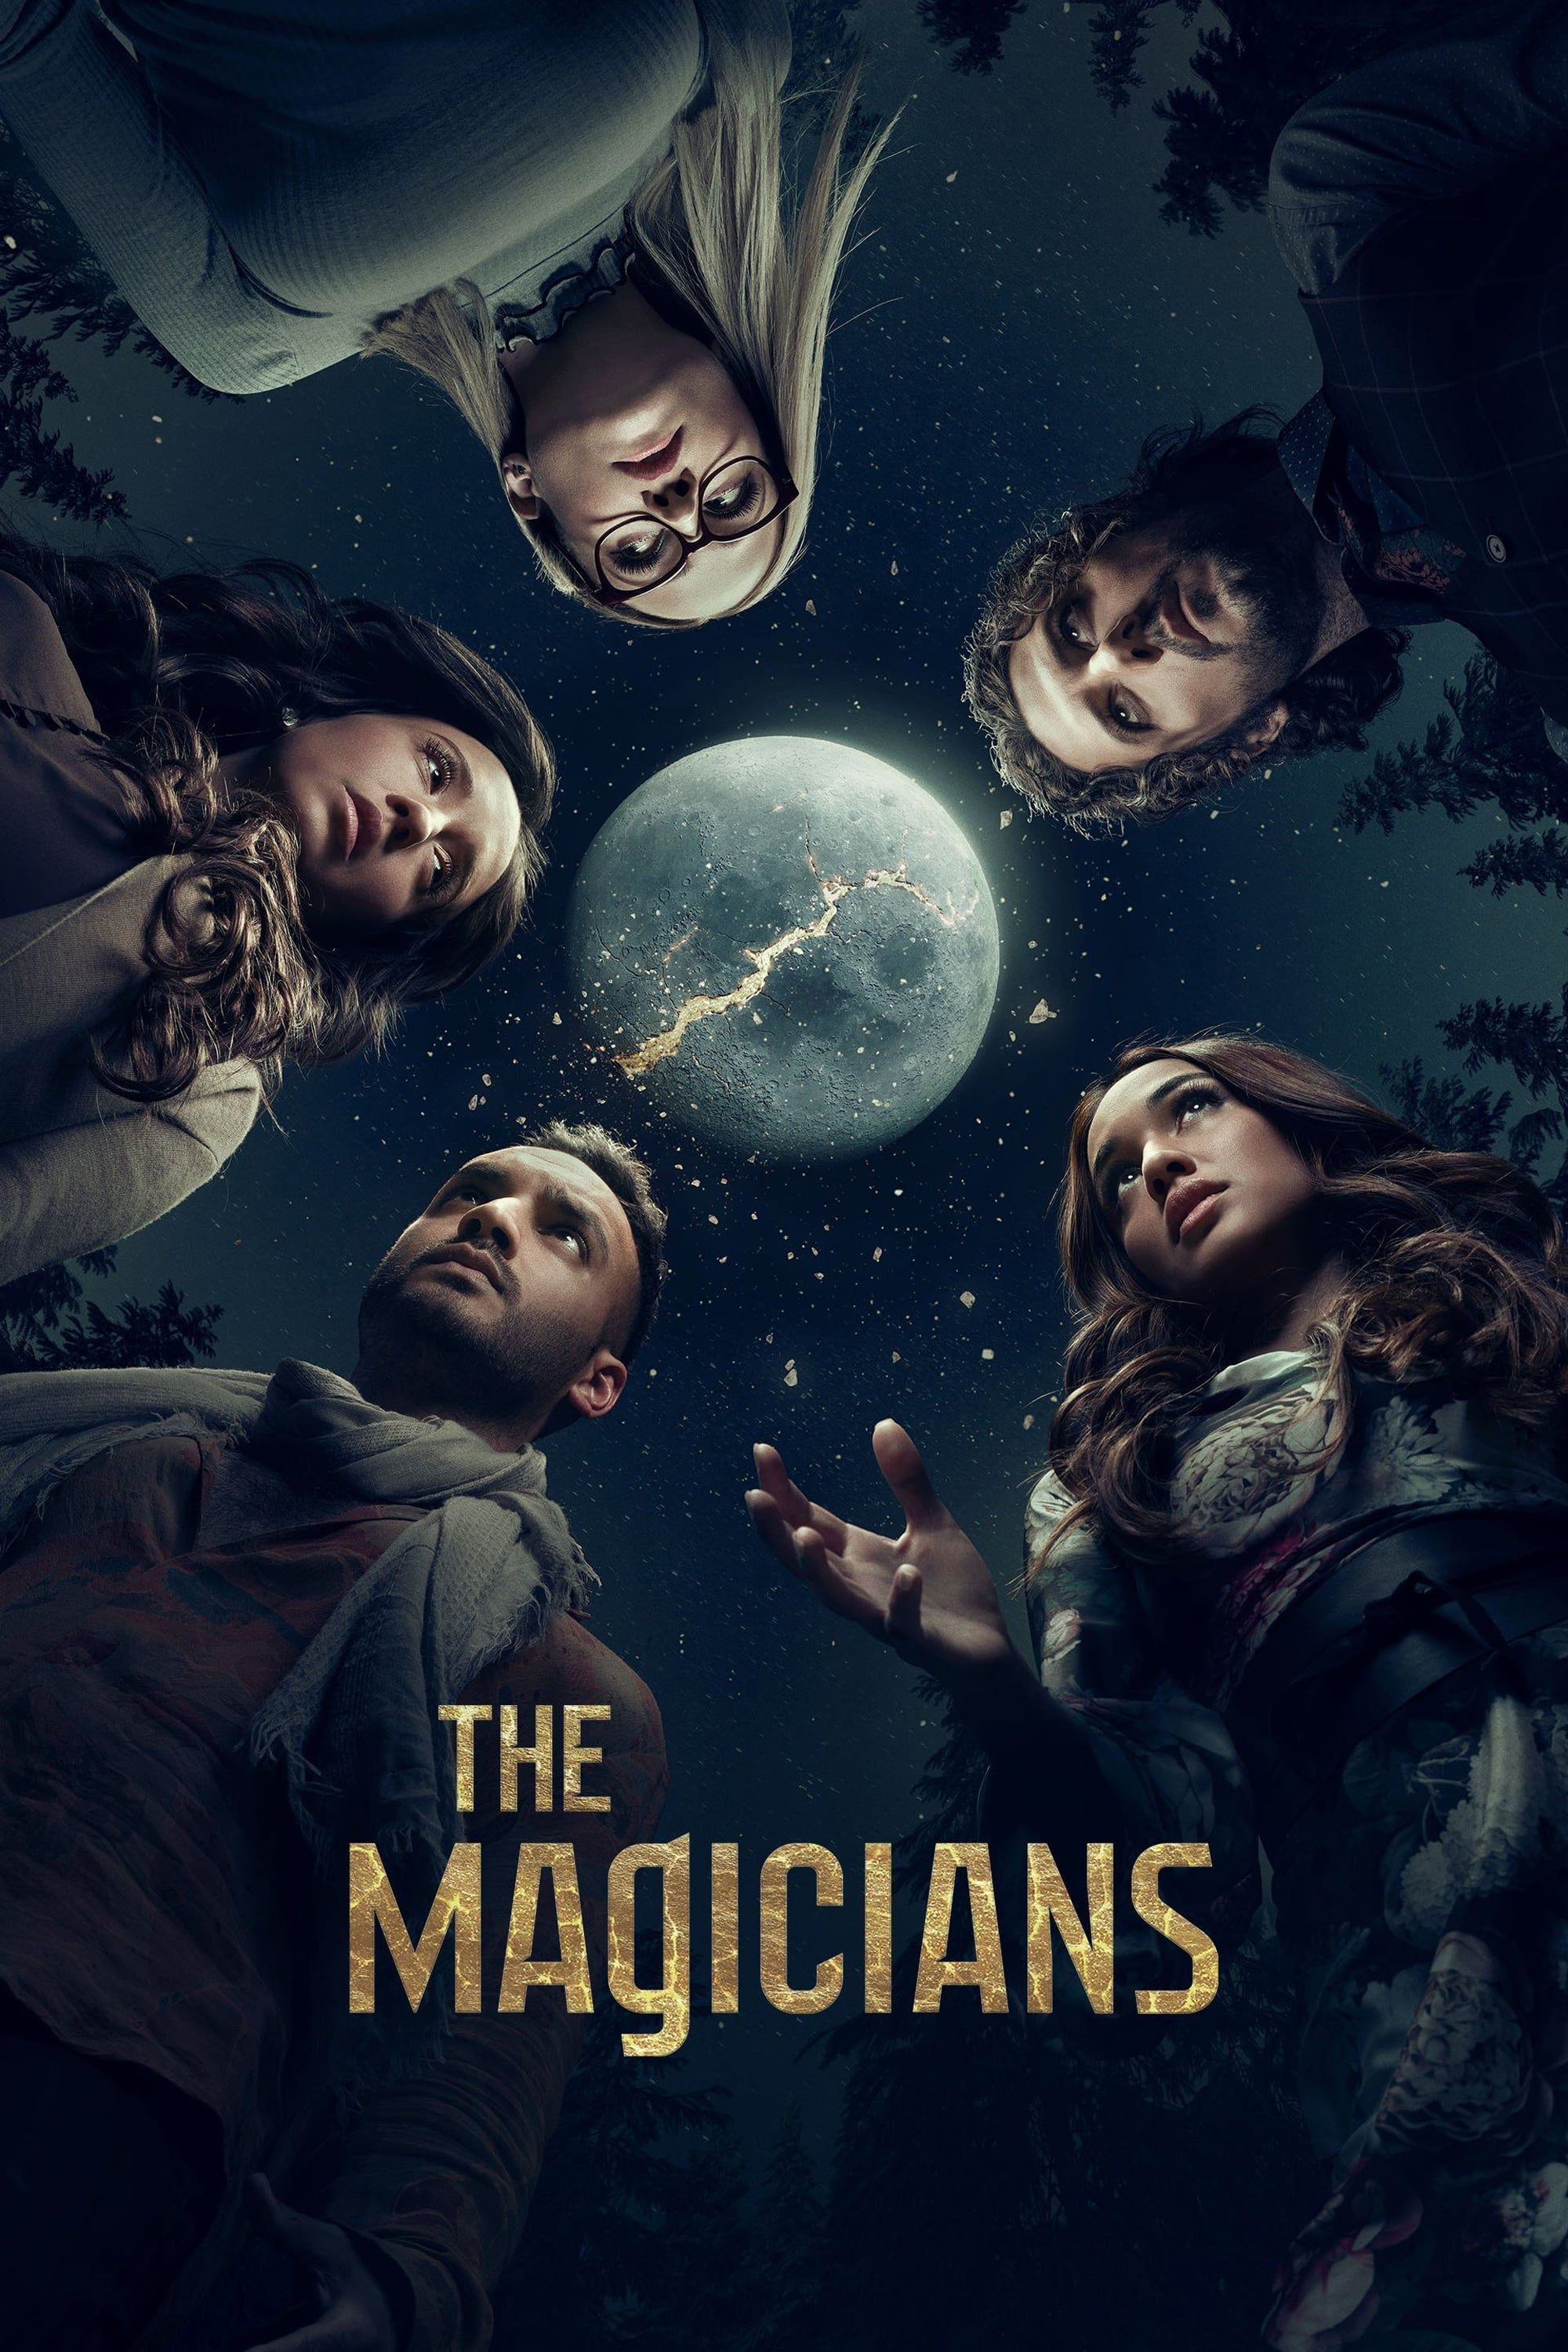 The Magicians 2020 Season 5 Episode 4 The Magicians Syfy The Magicians Watch Lucifer